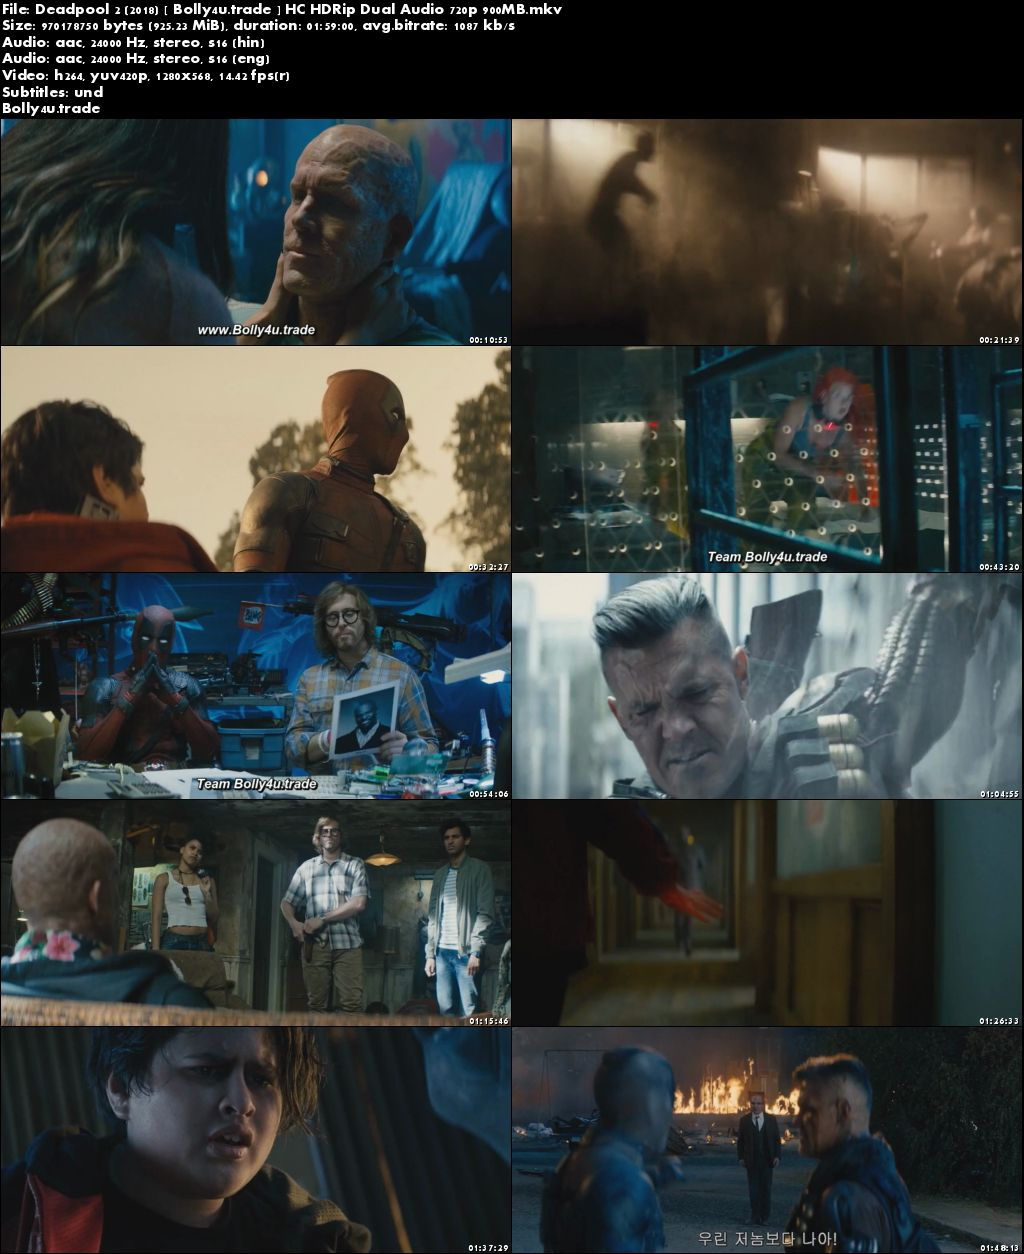 Deadpool 2 2018 HC HDRip 400MB Hindi Dubbed Dual Audio 480p Download